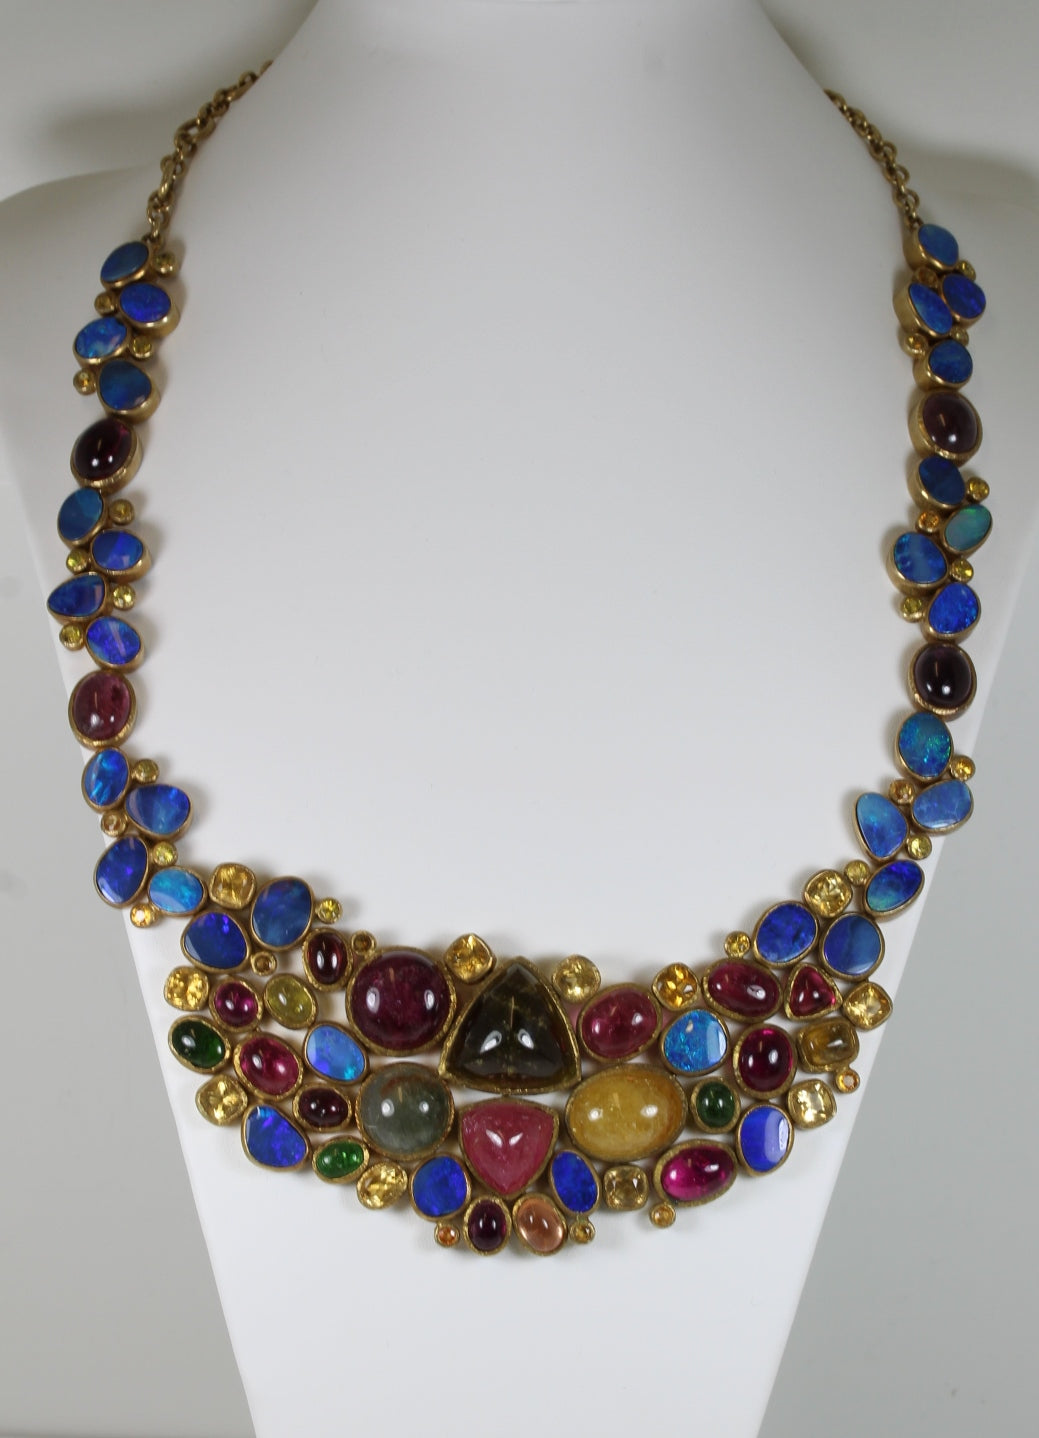 Lapis Lazuli, Tourmaline, Citrine, Peridot Stones Set In A Gold Plated Sterling Silver Necklace With a Shepheard Hook Clasp